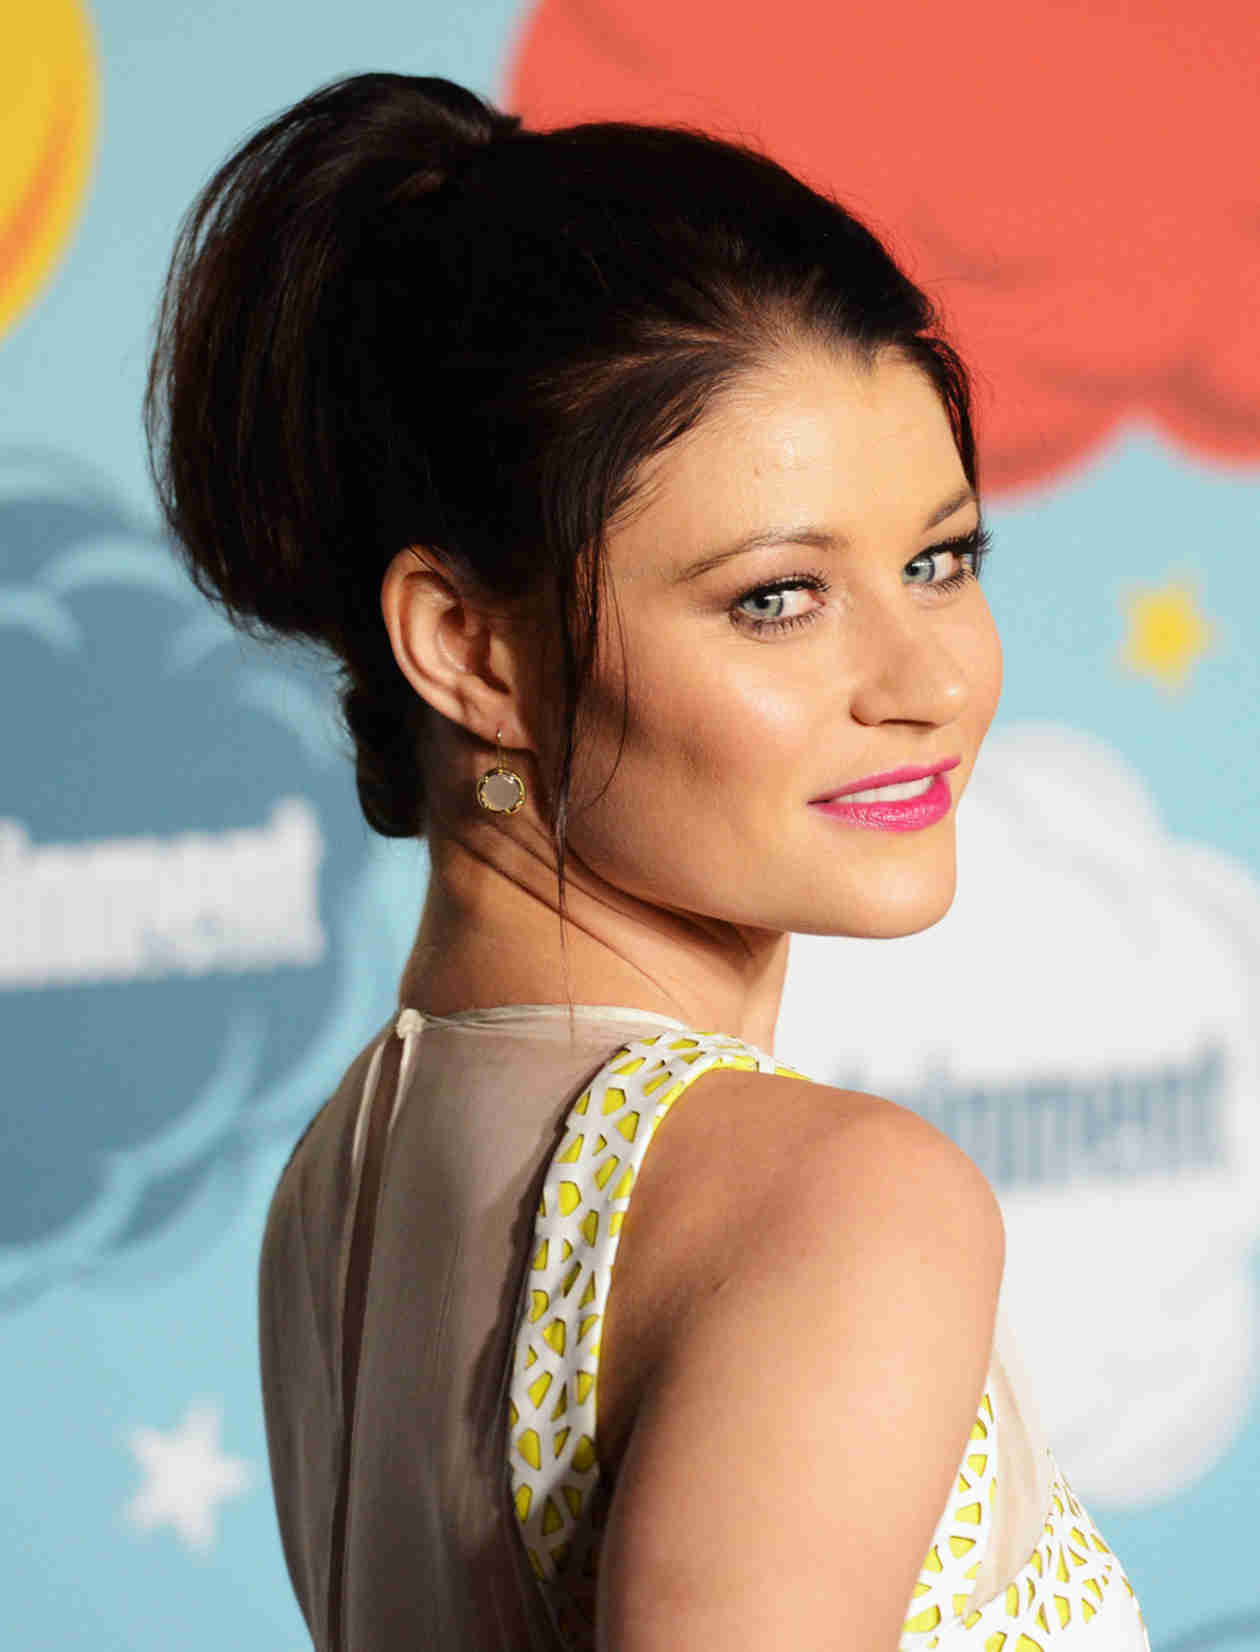 OUAT Star Emilie de Ravin and Joshua Janowicz Are Getting a Divorce